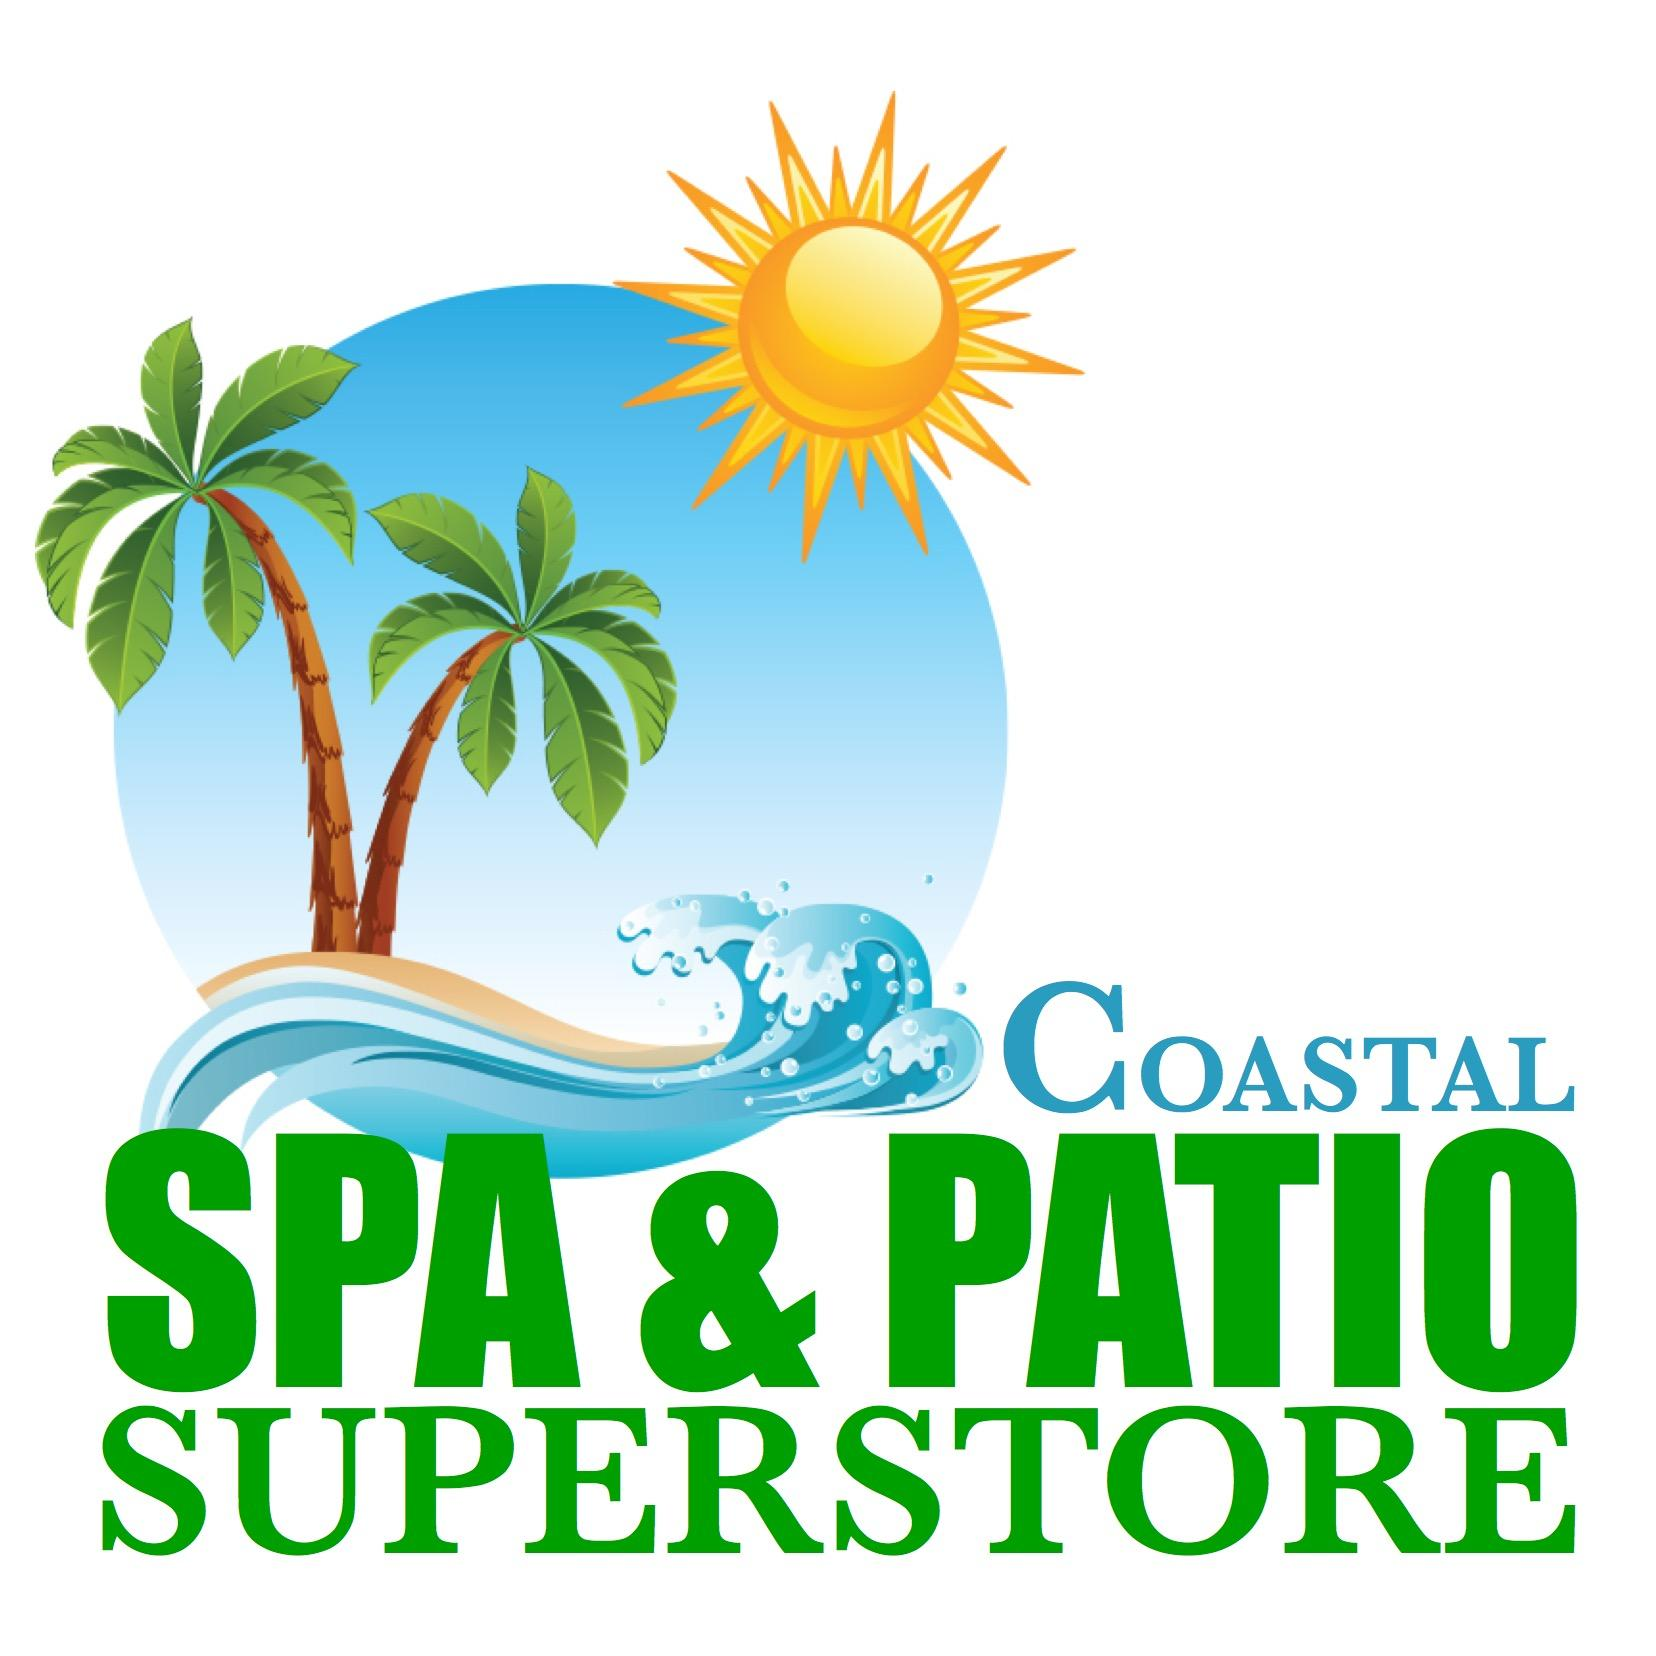 Coastal Spa and Patio Superstore